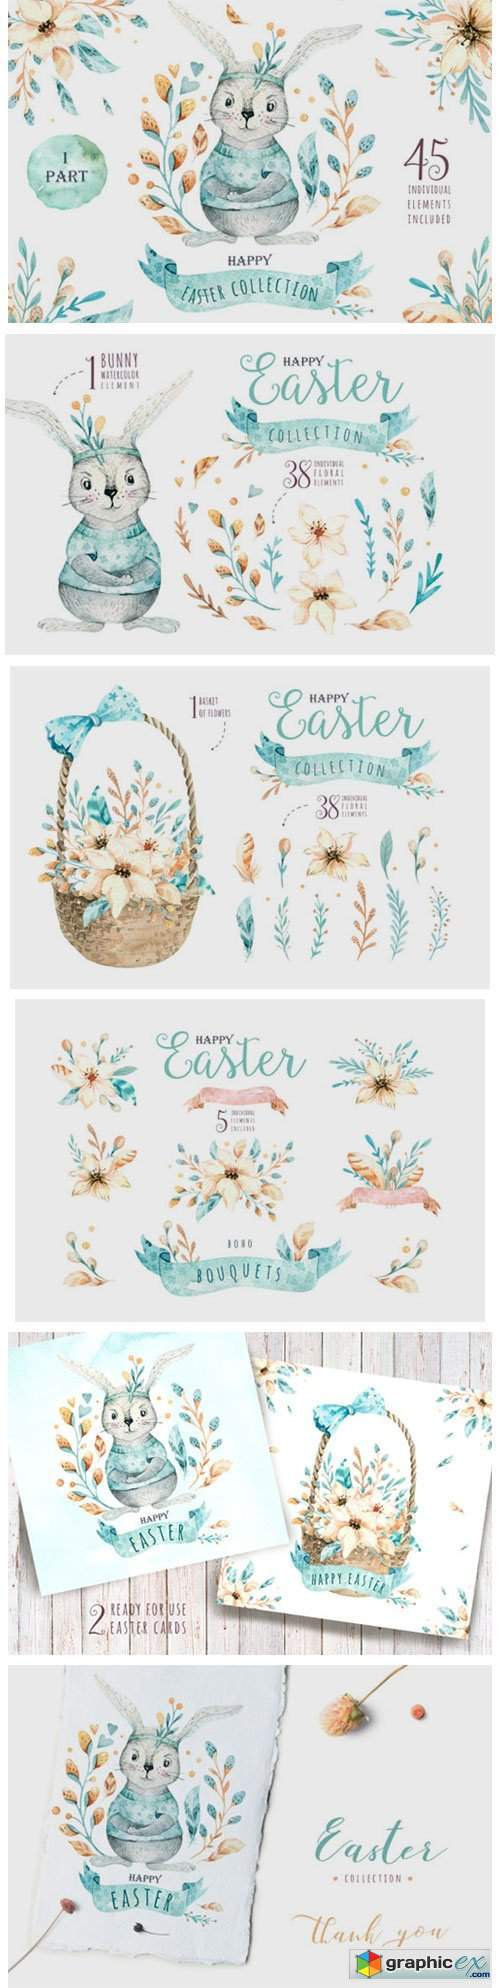 Easter Cute Bunny I. Watercolor Set